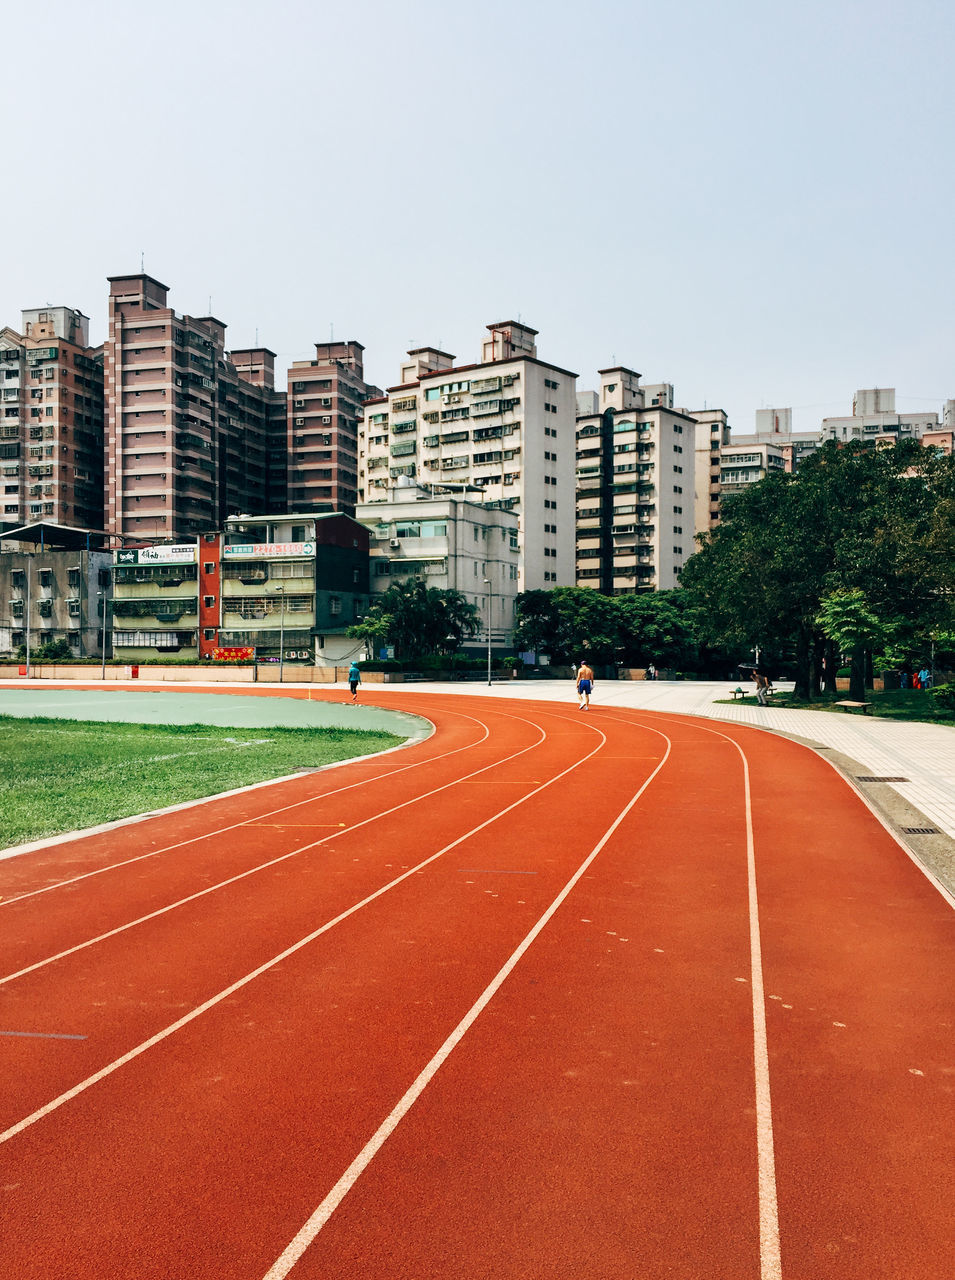 architecture, building exterior, clear sky, built structure, running track, day, outdoors, sport, tree, city, no people, sports track, sky